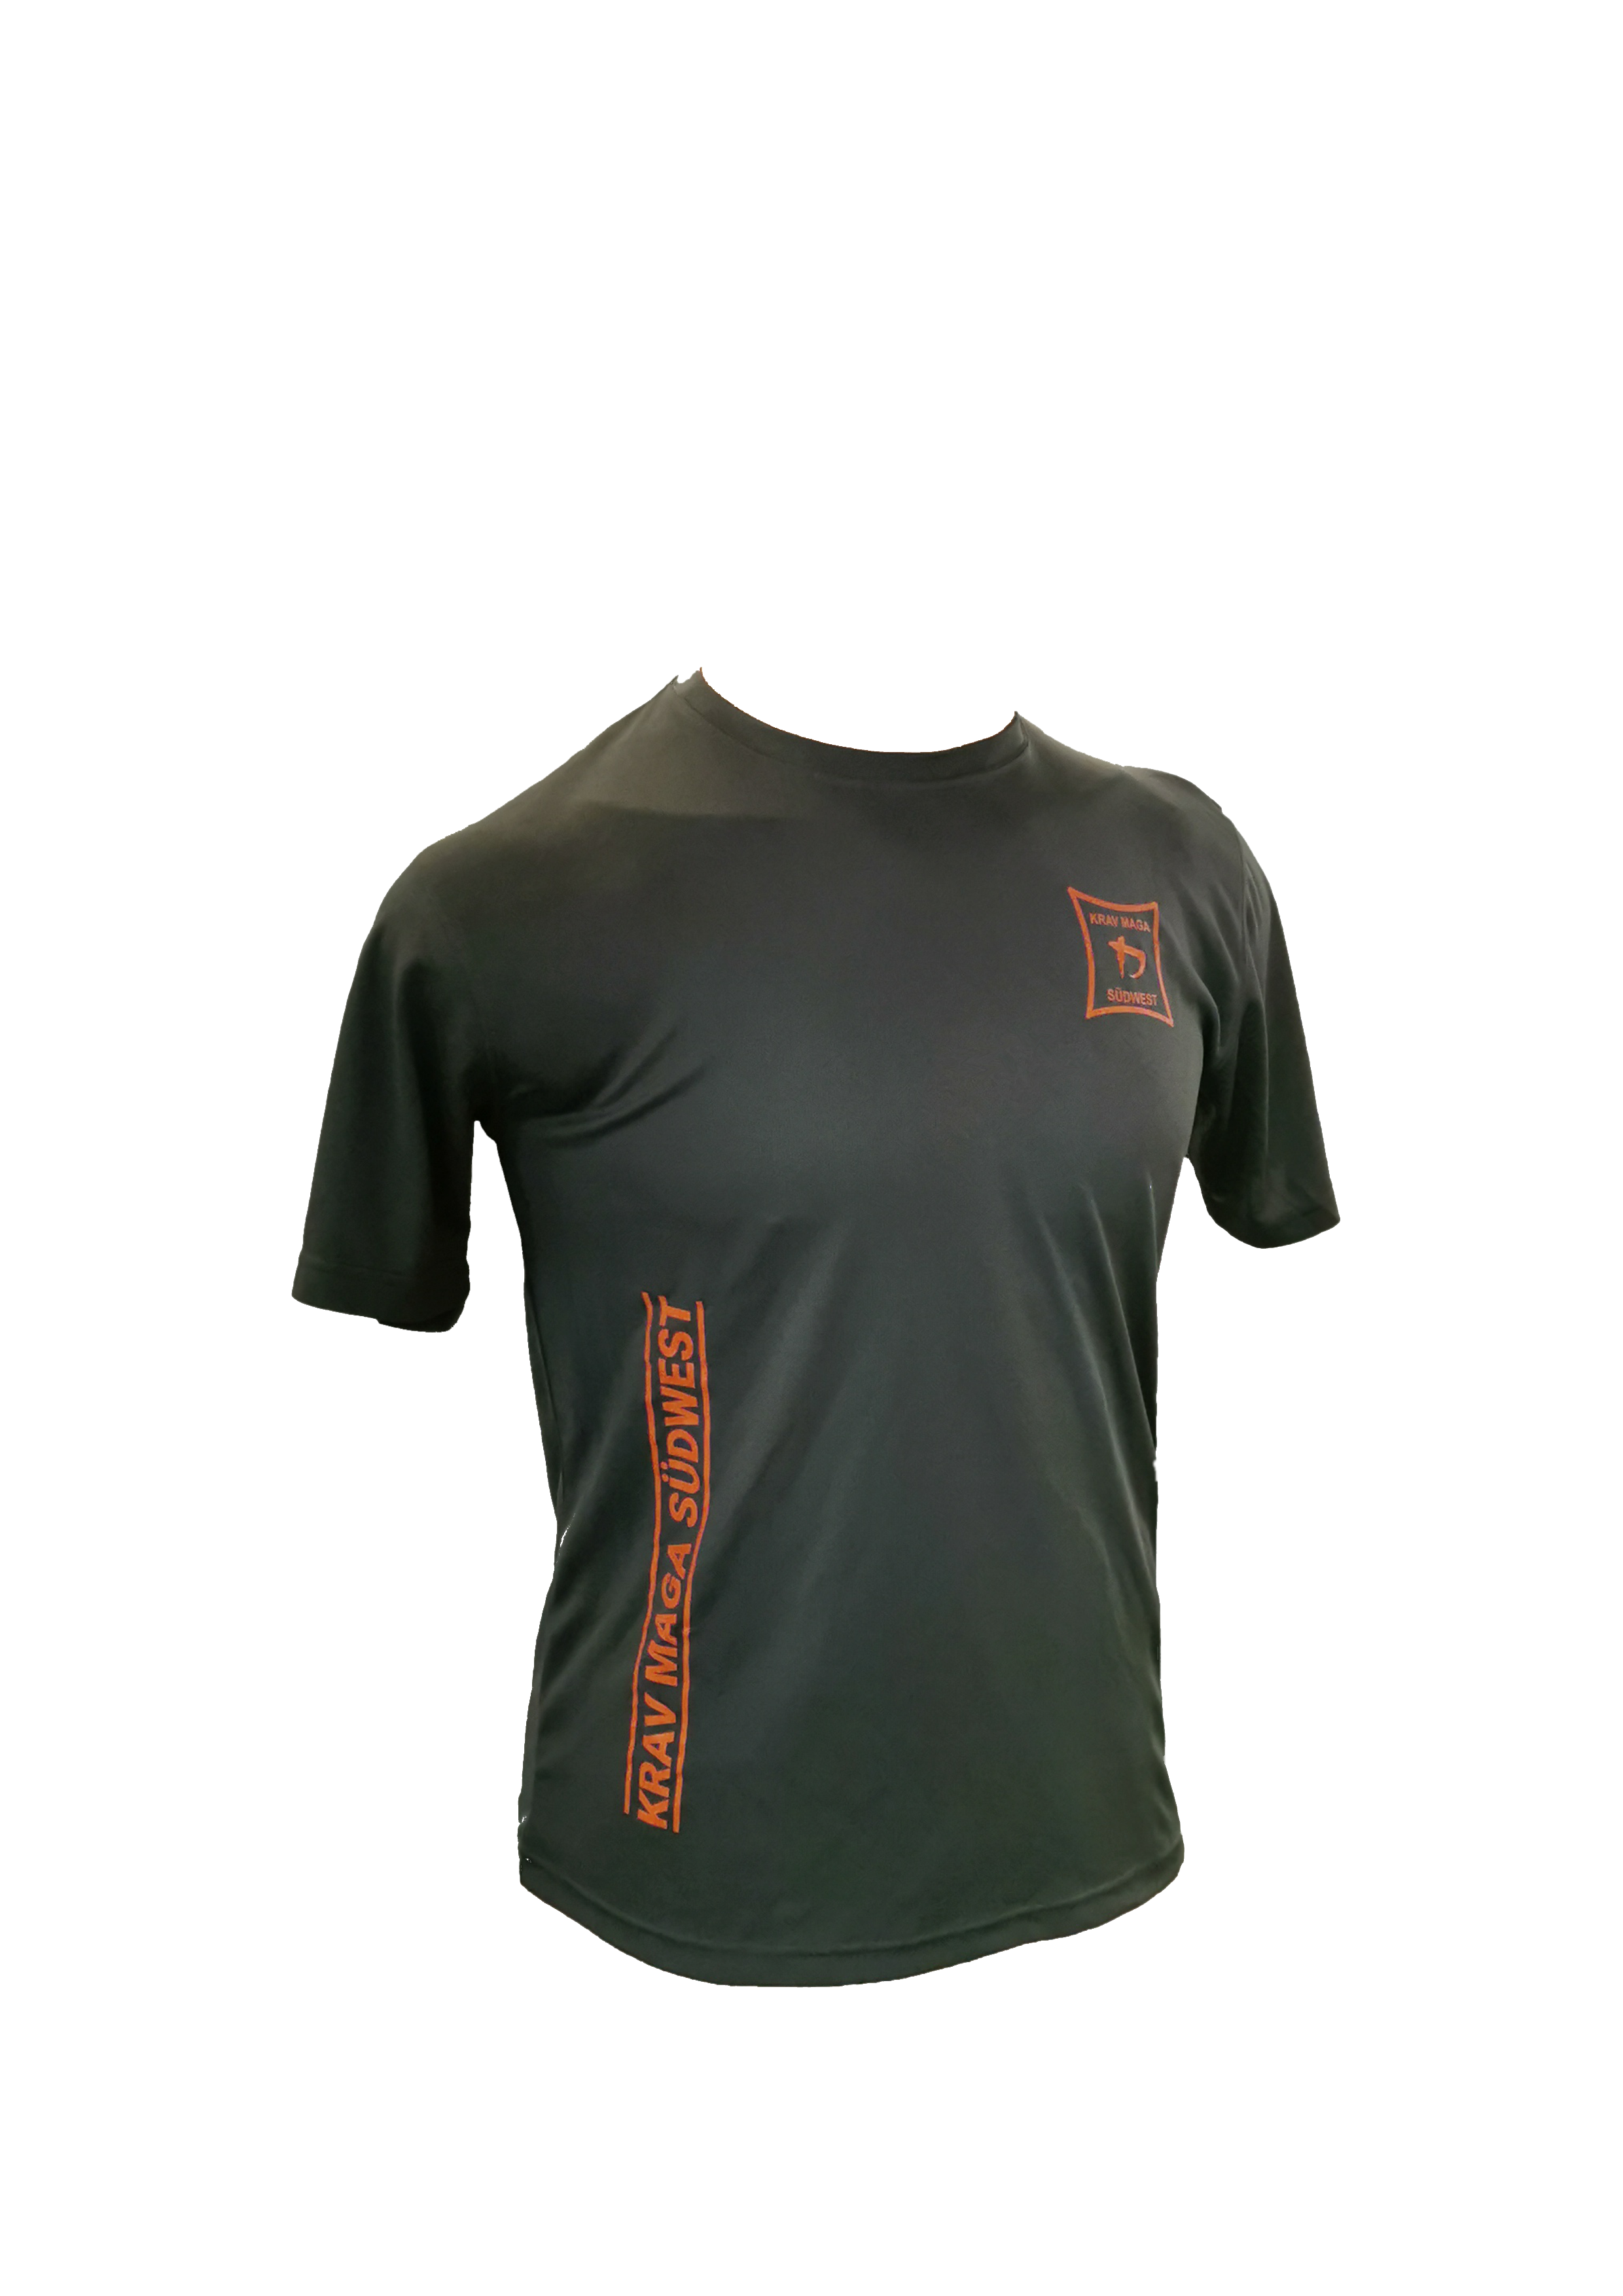 KMSW T-Shirt (Dry Fit oder Baumwolle)